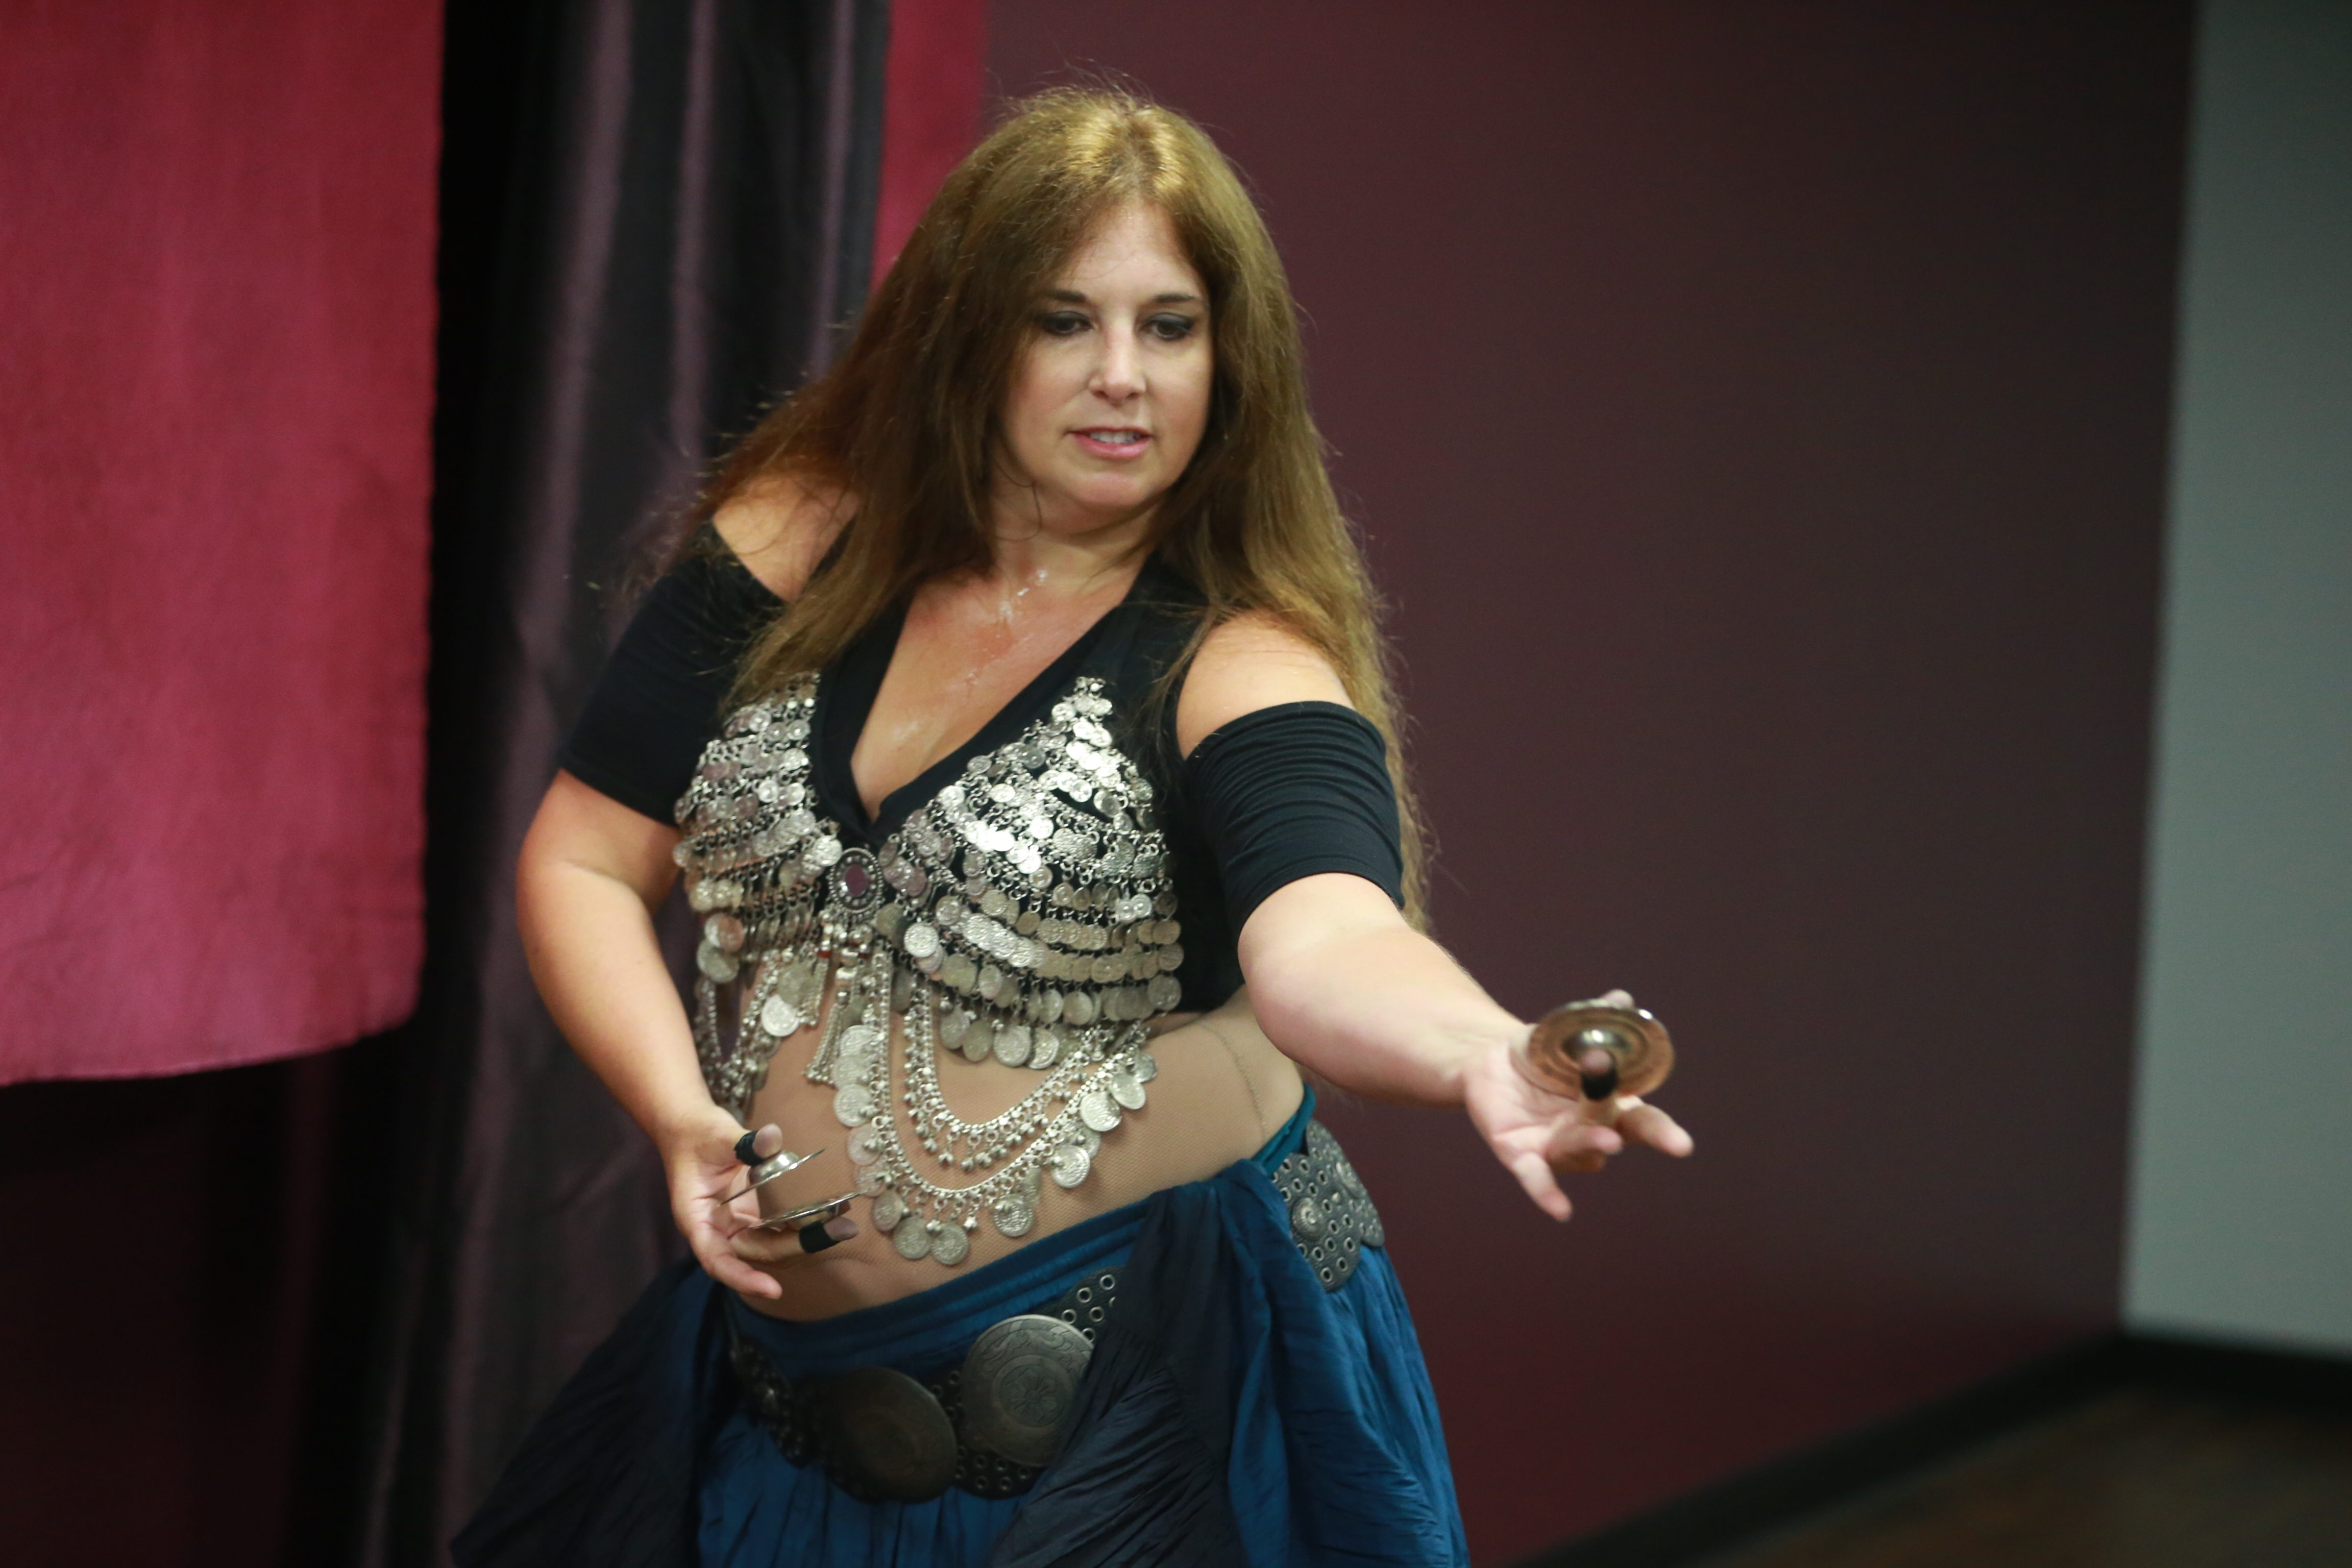 Jill Nykkei is the lead instructor at the Belly Dance Academy in the Tri-Main building on Main Street. She also is a founding member of  Fleuron Rouge dance troupe.